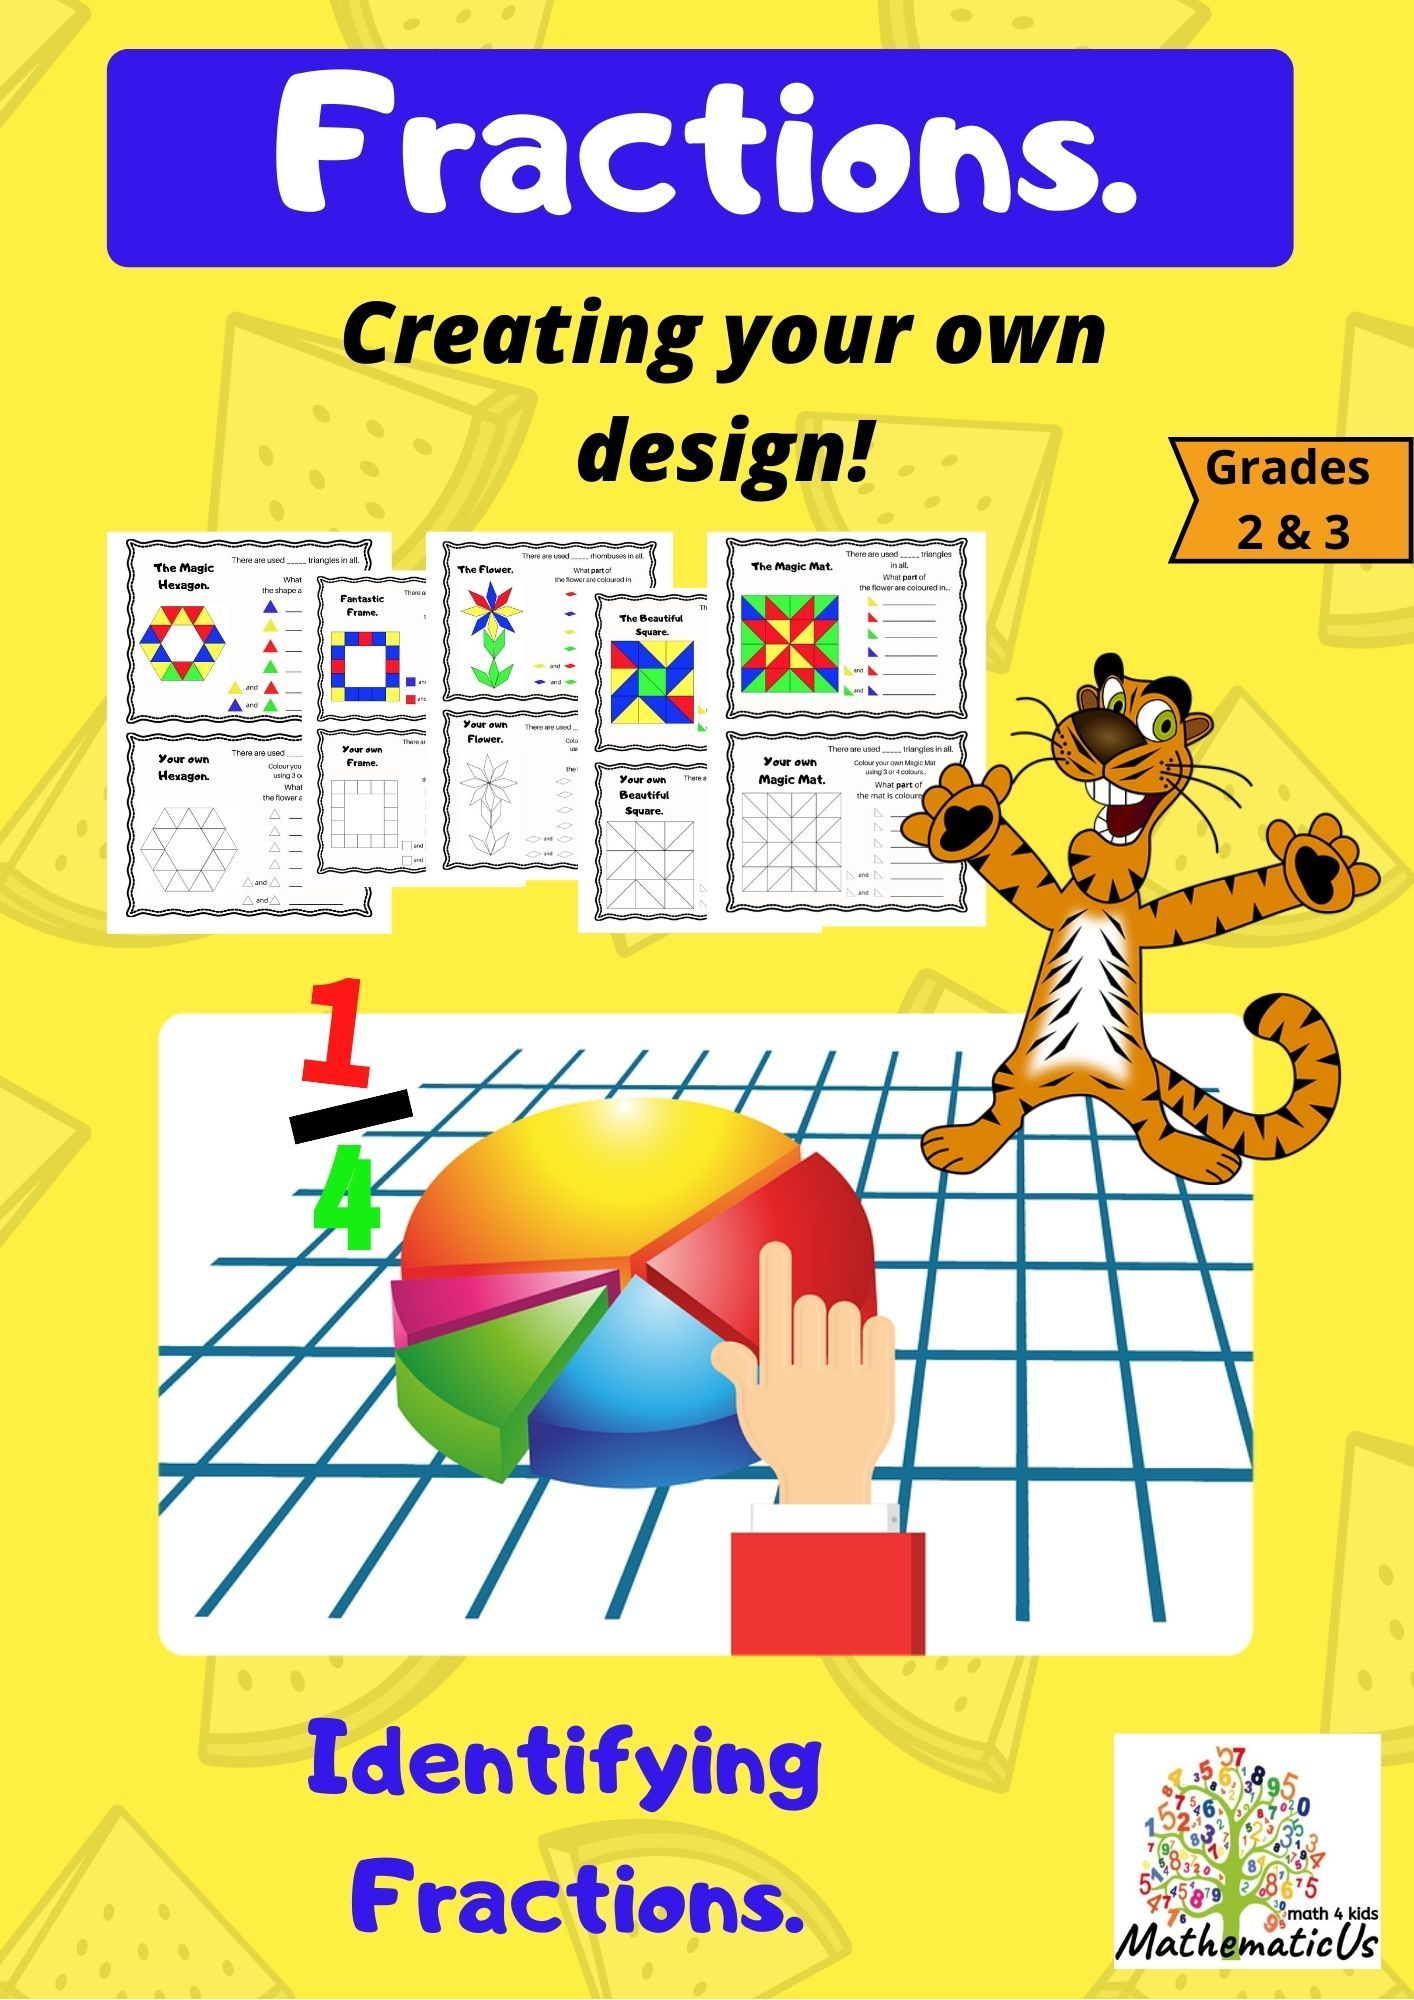 Fractions Identifying Fractions Creating Your Own Design Grade 3 Identifying Fractions Elementary School Math Fractions